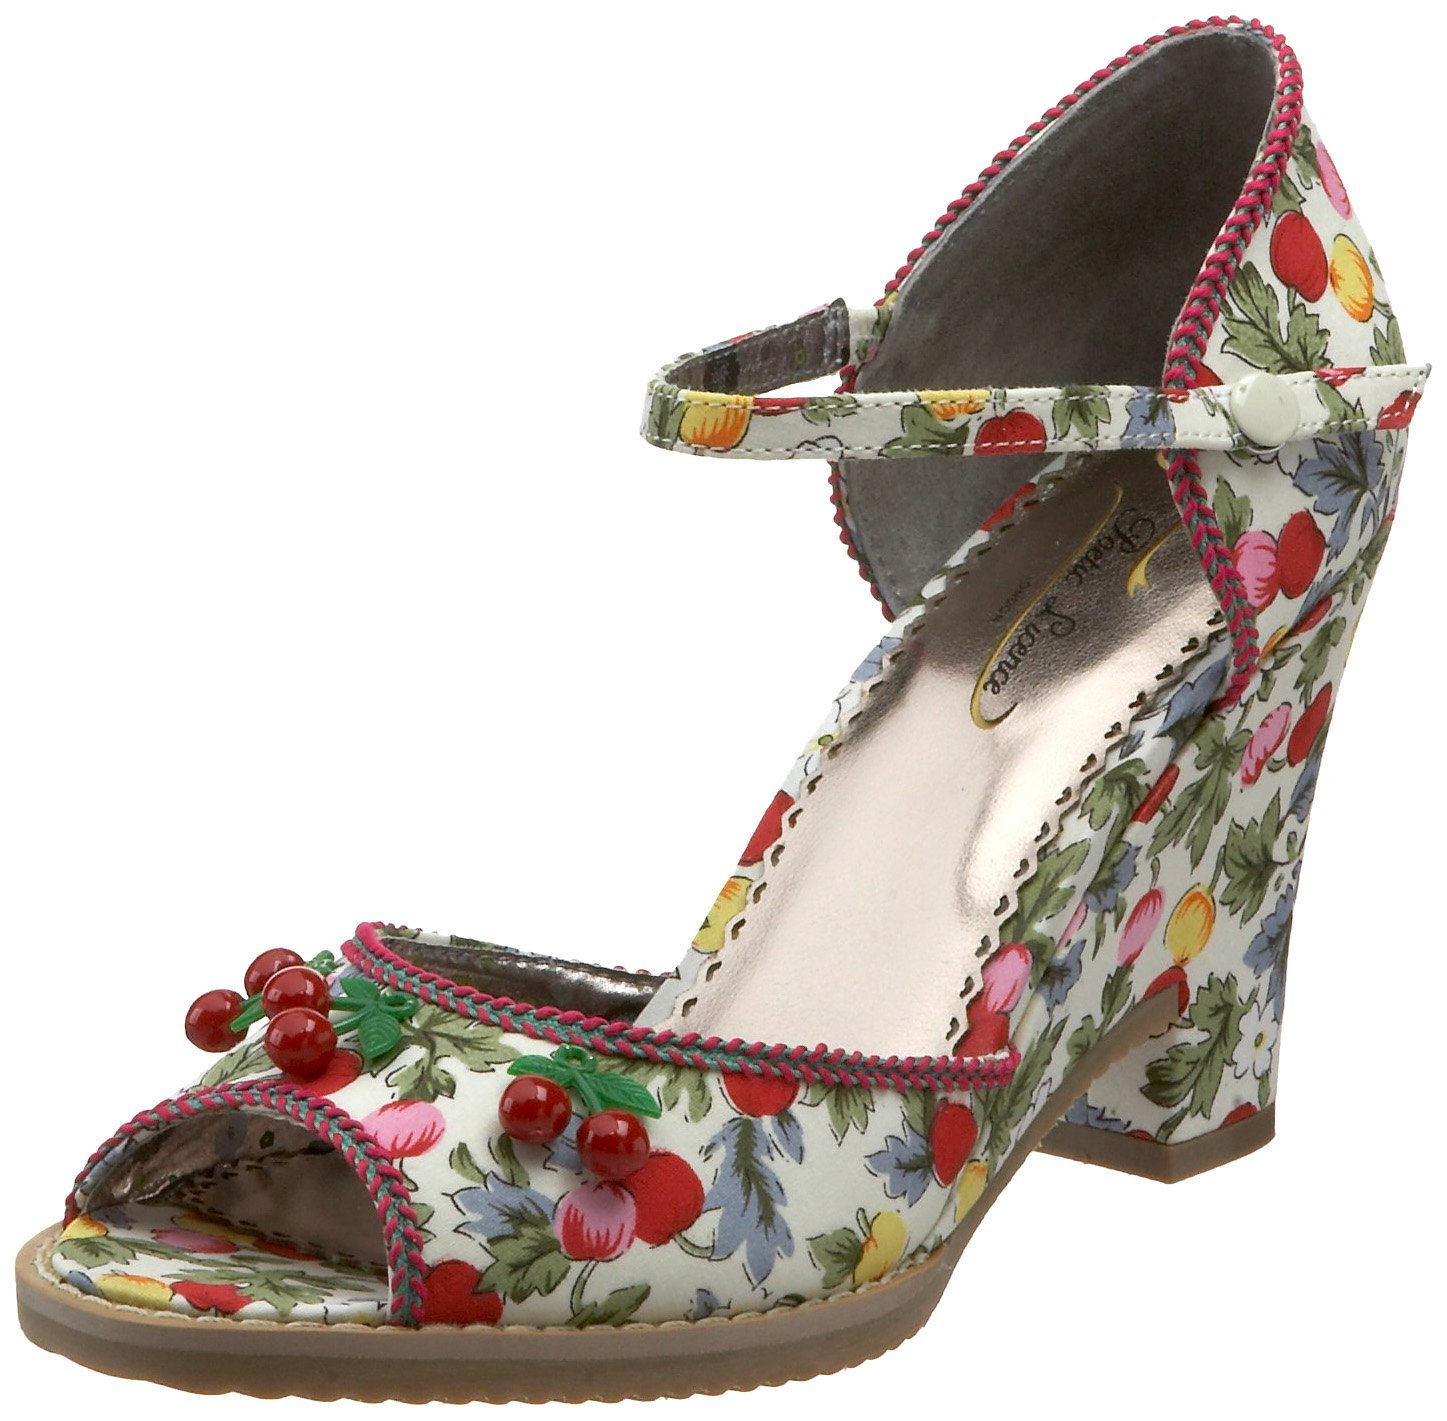 Sweet vegan peep toe wedge heels with cherries and flowers